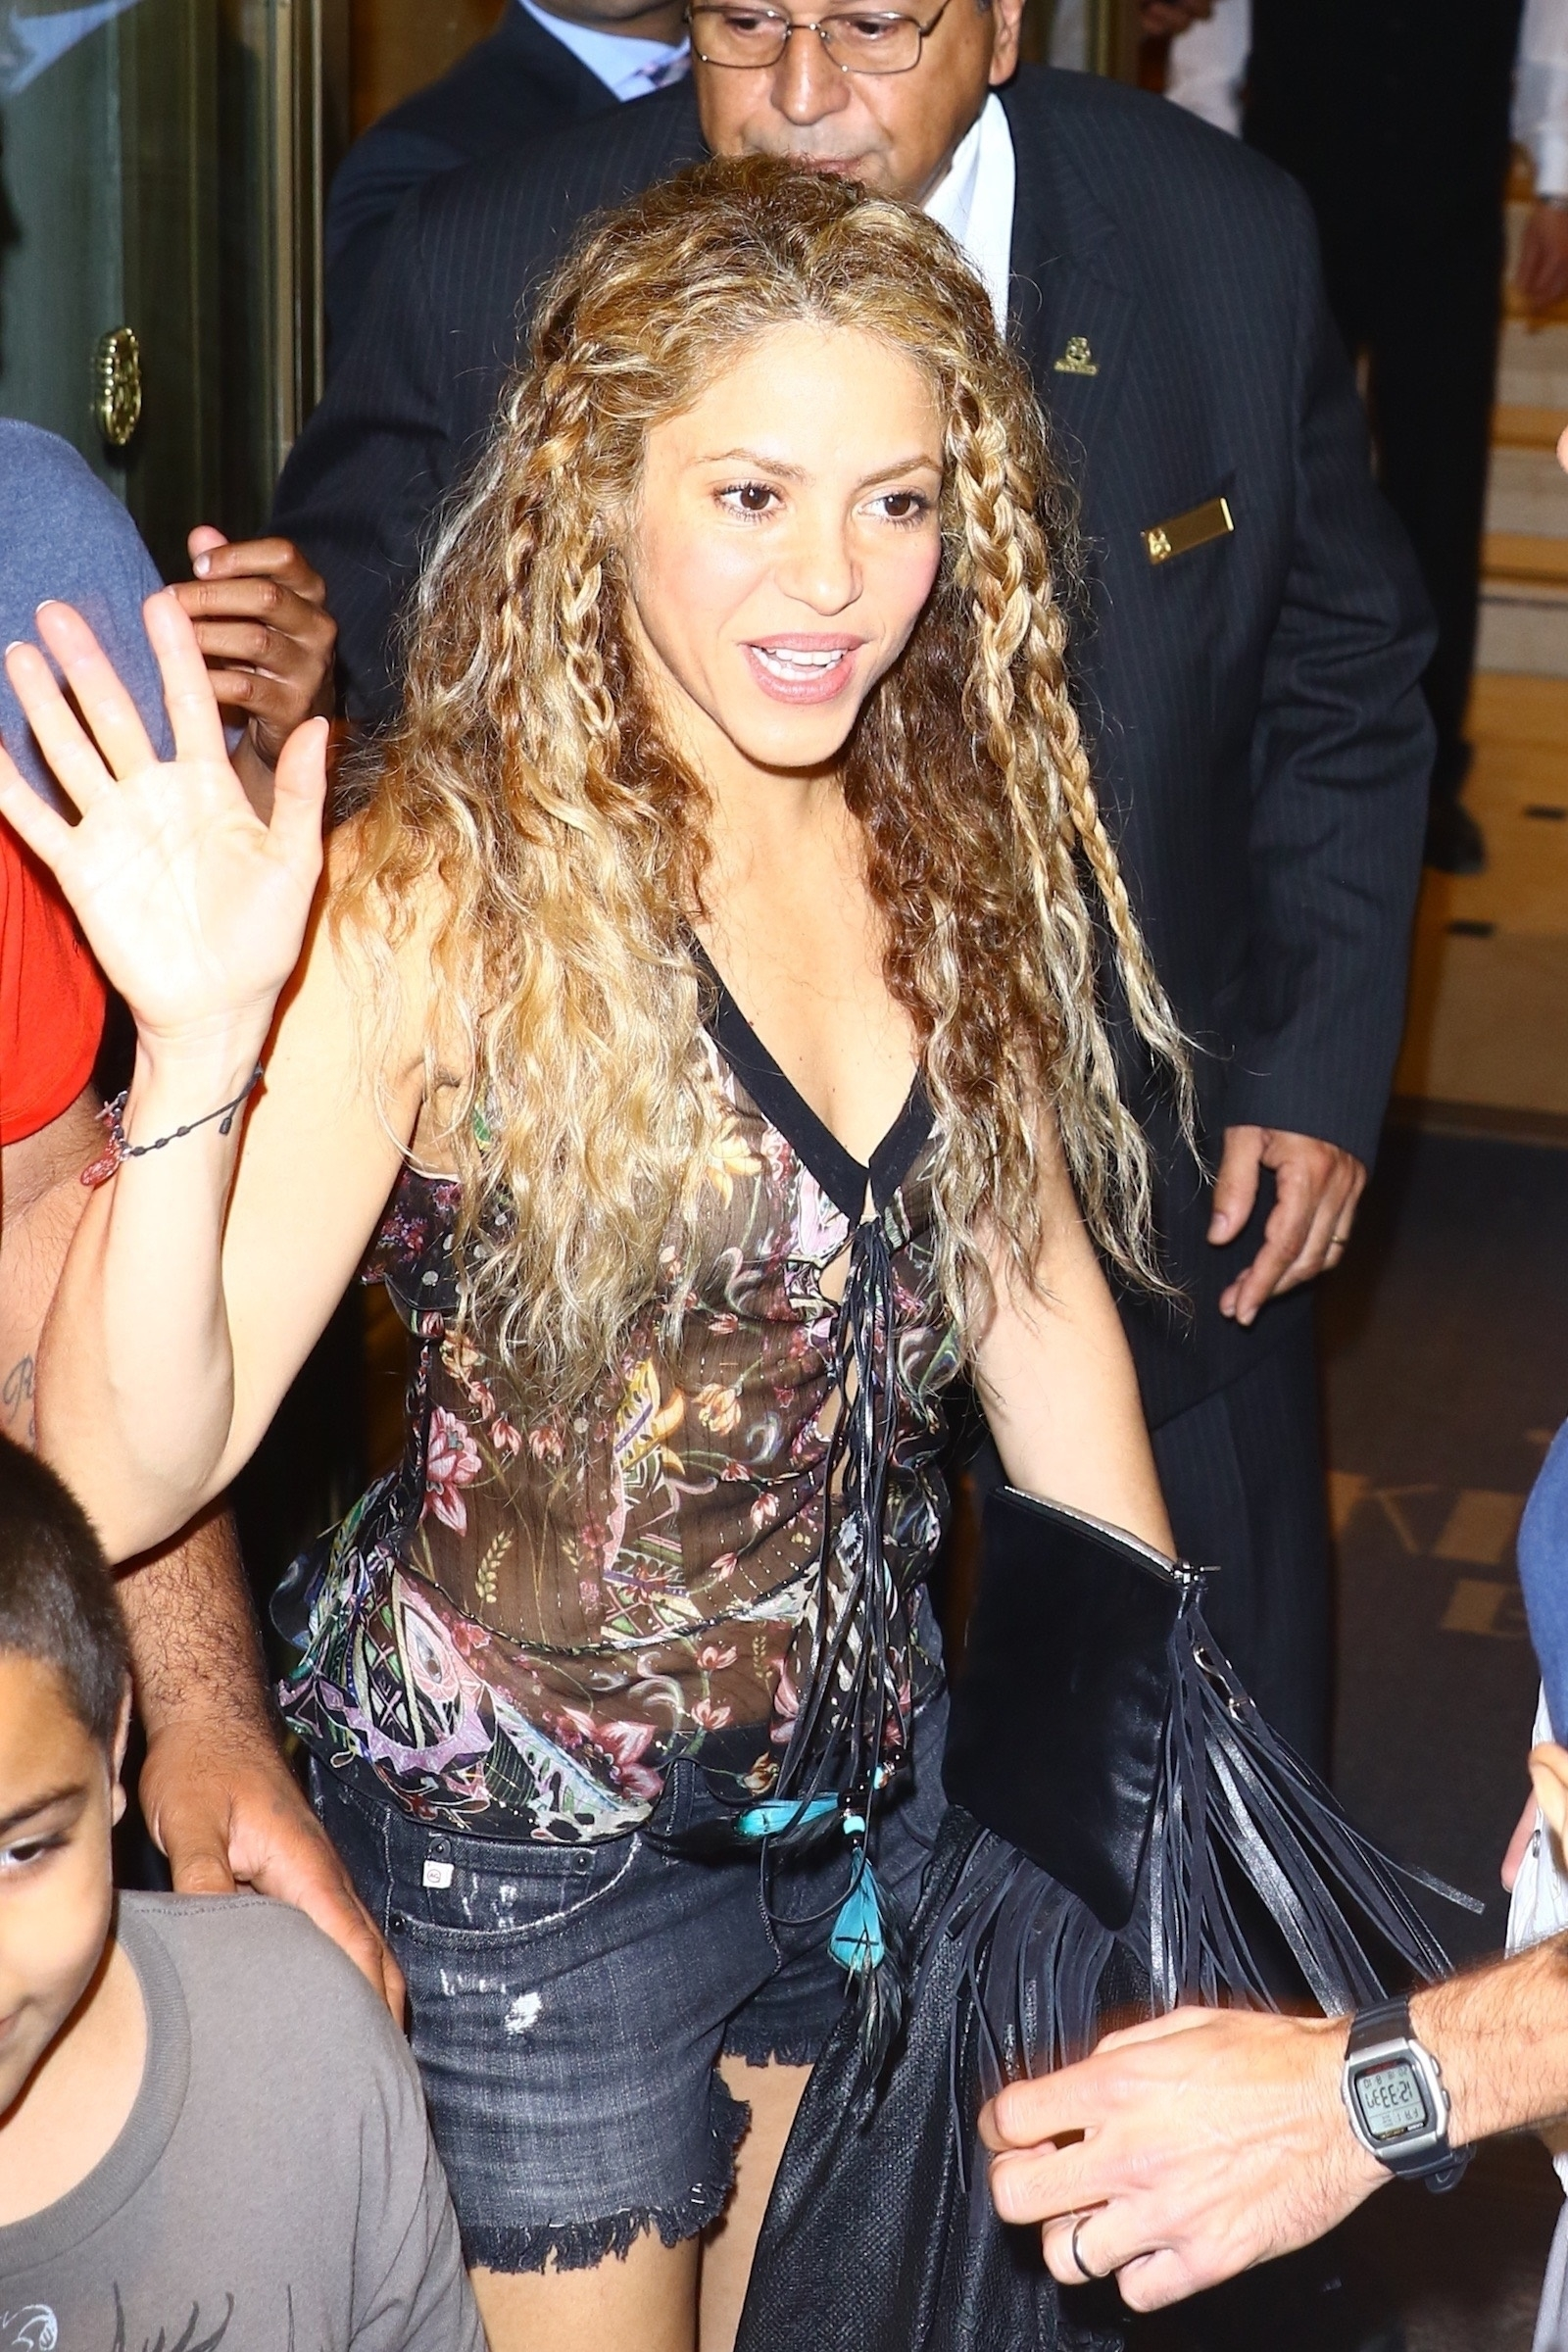 78215261_shakira-in-new-york-20180809-12.jpg